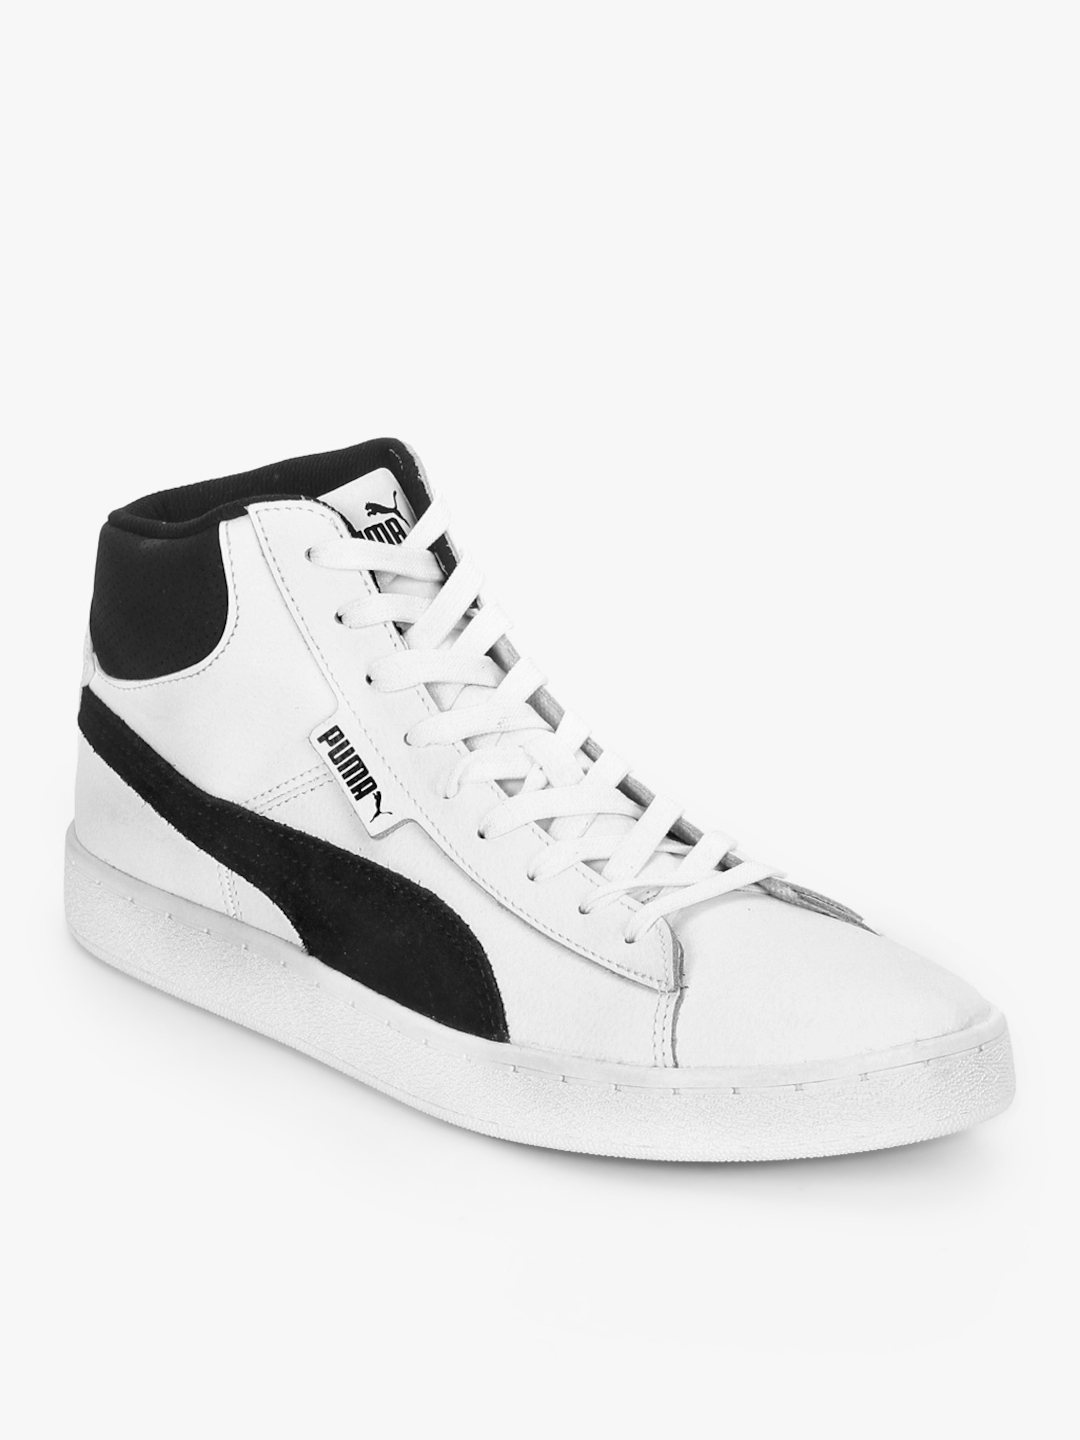 Casual 1948 Puma Mid Blac Buy White Sneakers L Idp HIYD2WE9